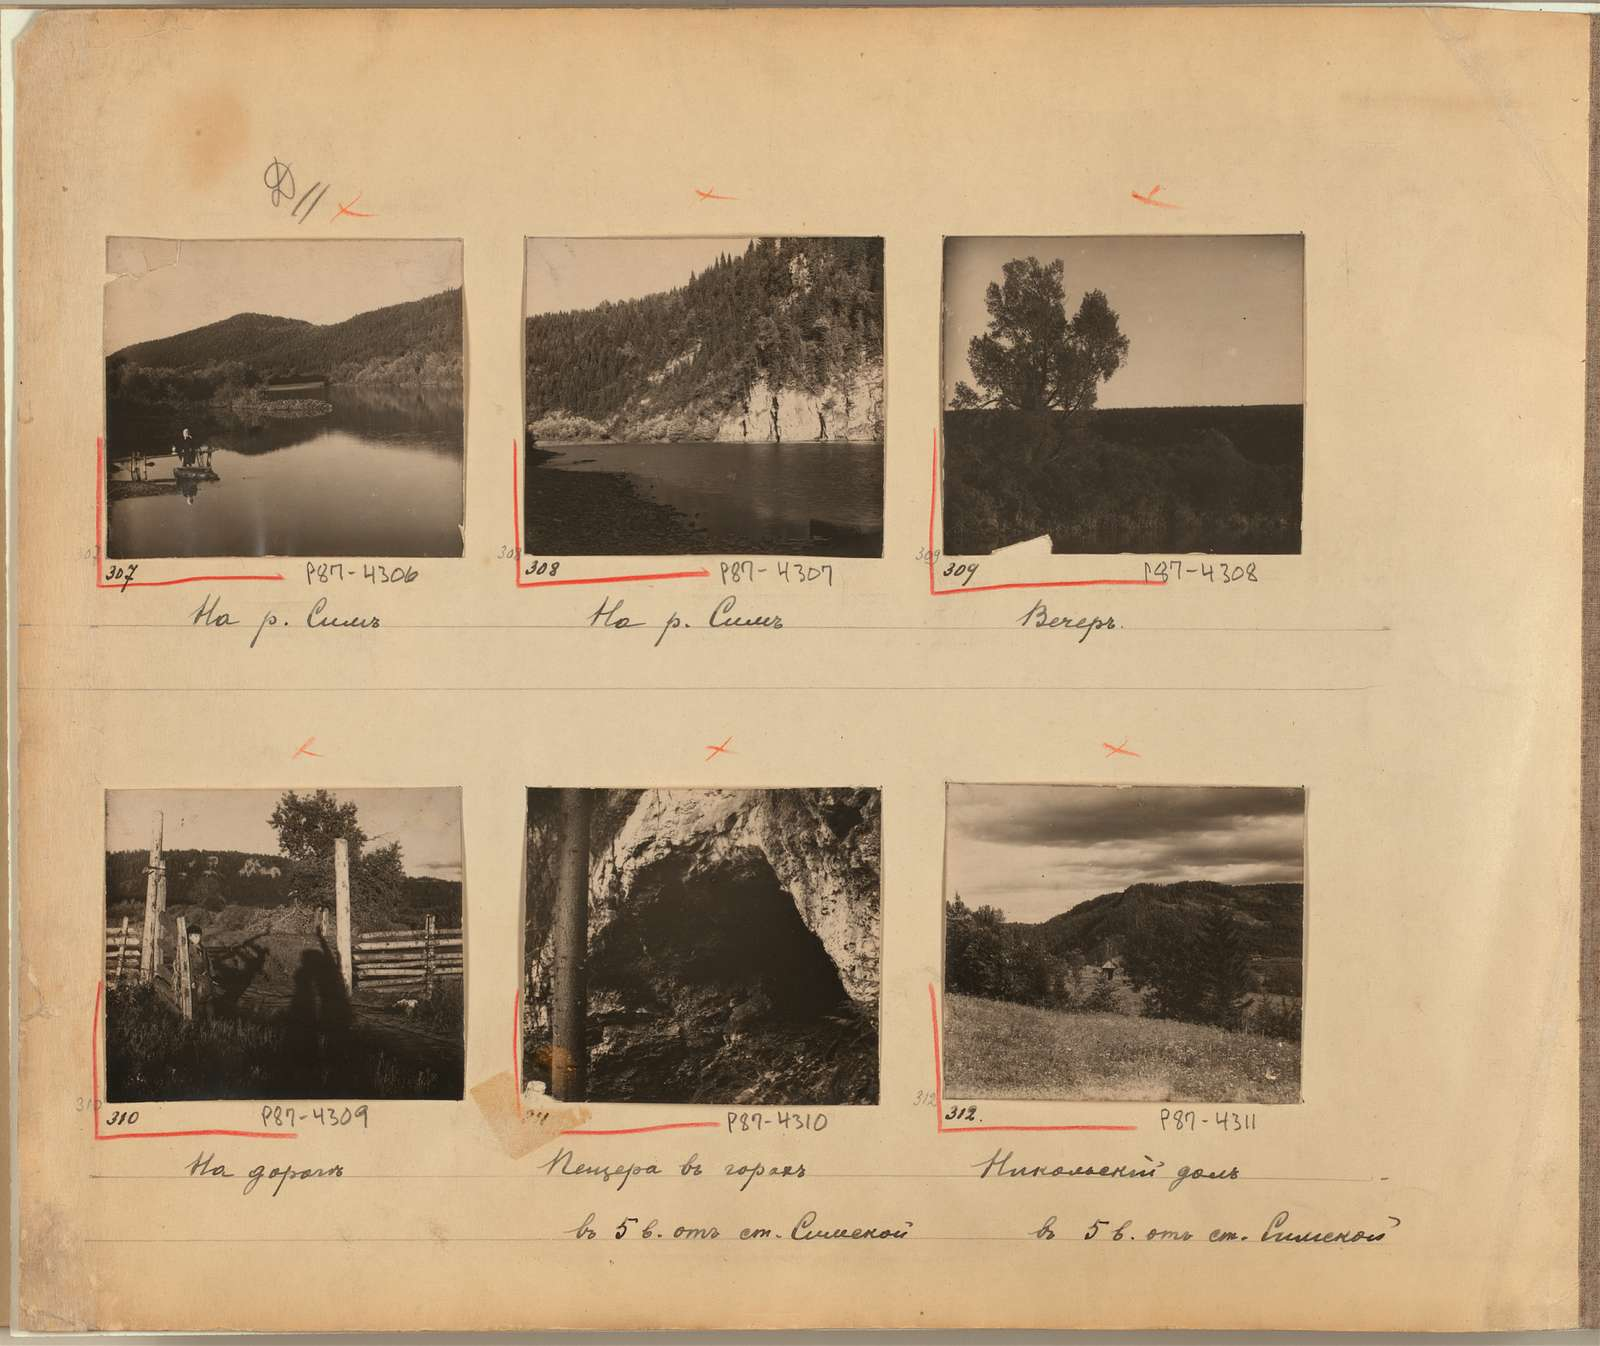 Views in the Ural Mountains, survey of industrial area, Russian Empire